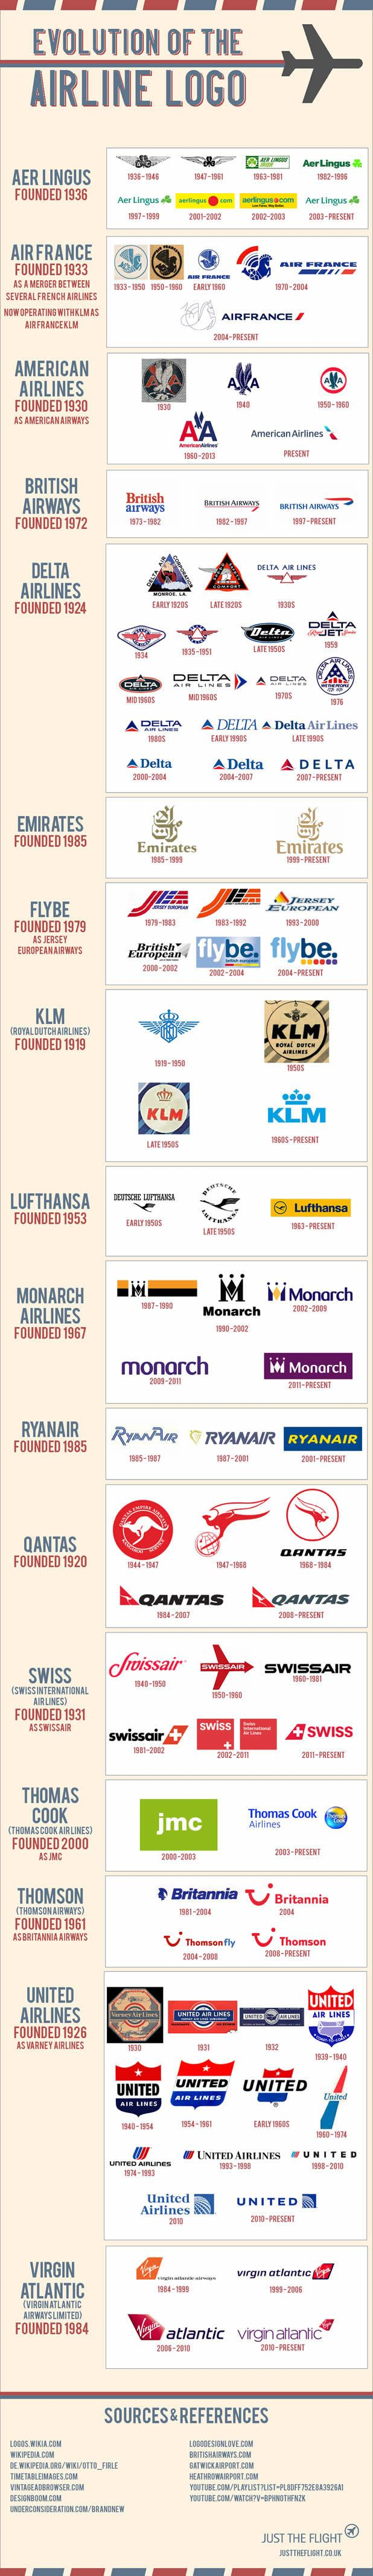 The Evolution of the Airline Logo #infographic #Airline #Logo